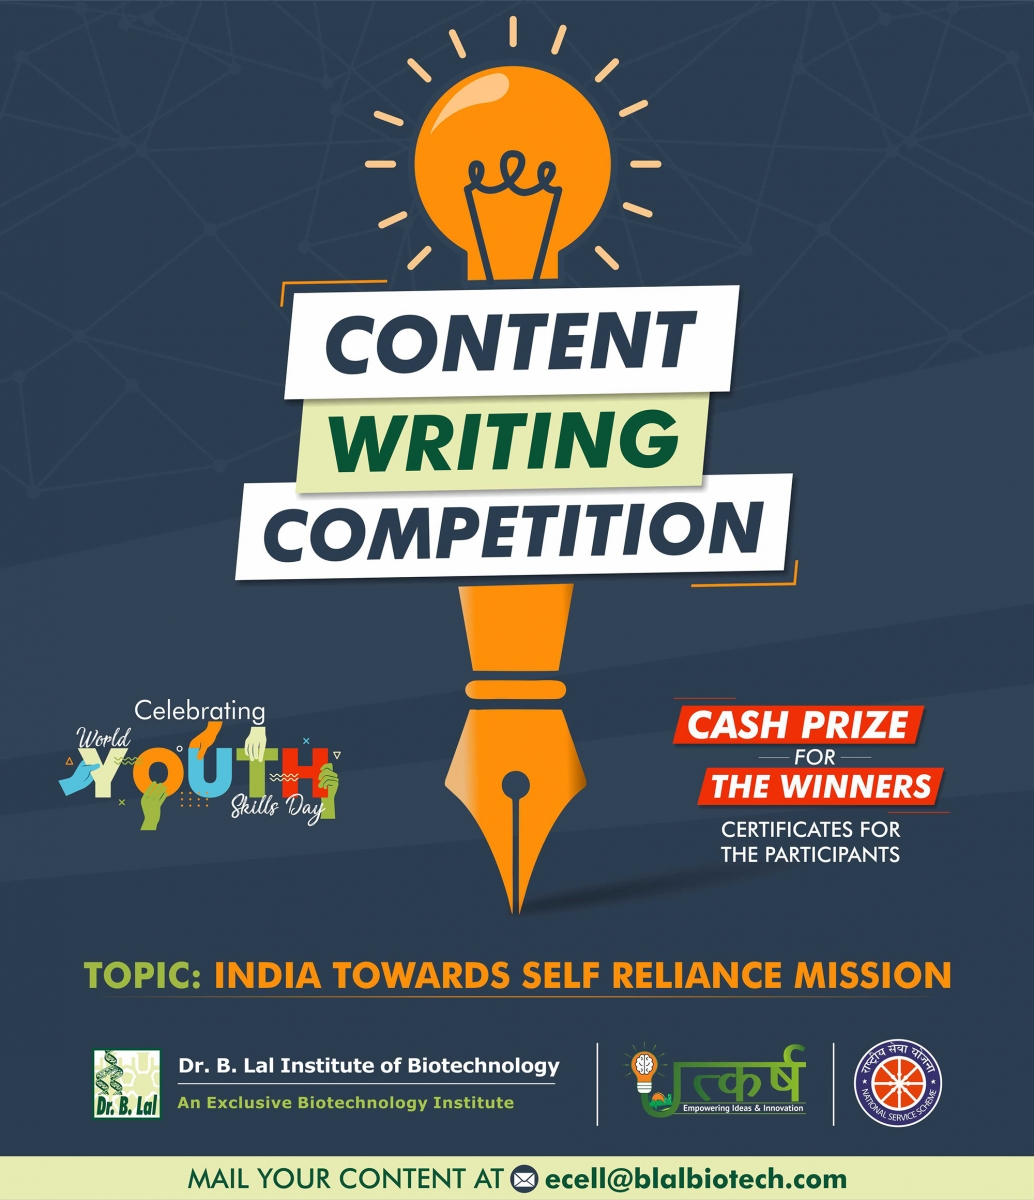 Content Writing Competition